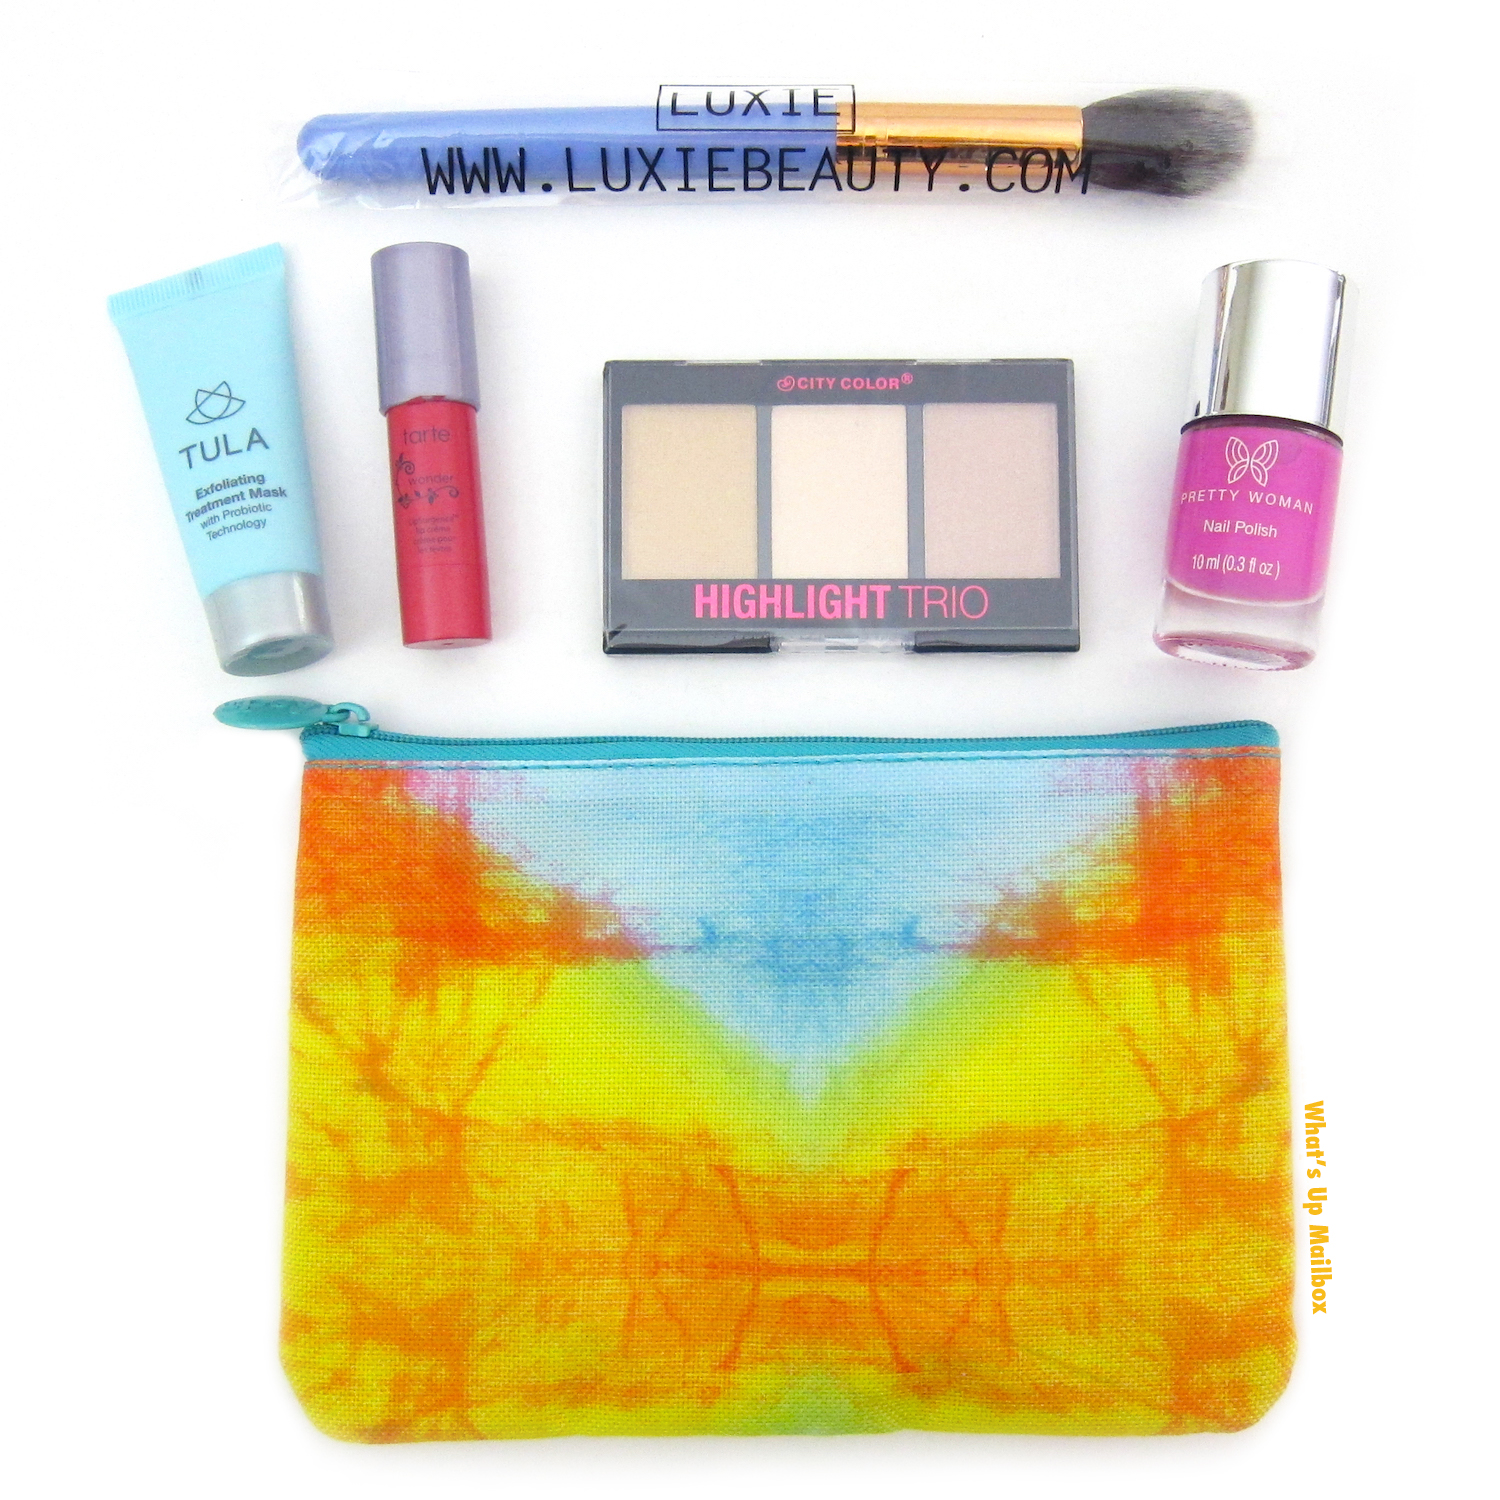 My Ipsy April 2016 Glam Bag Items!